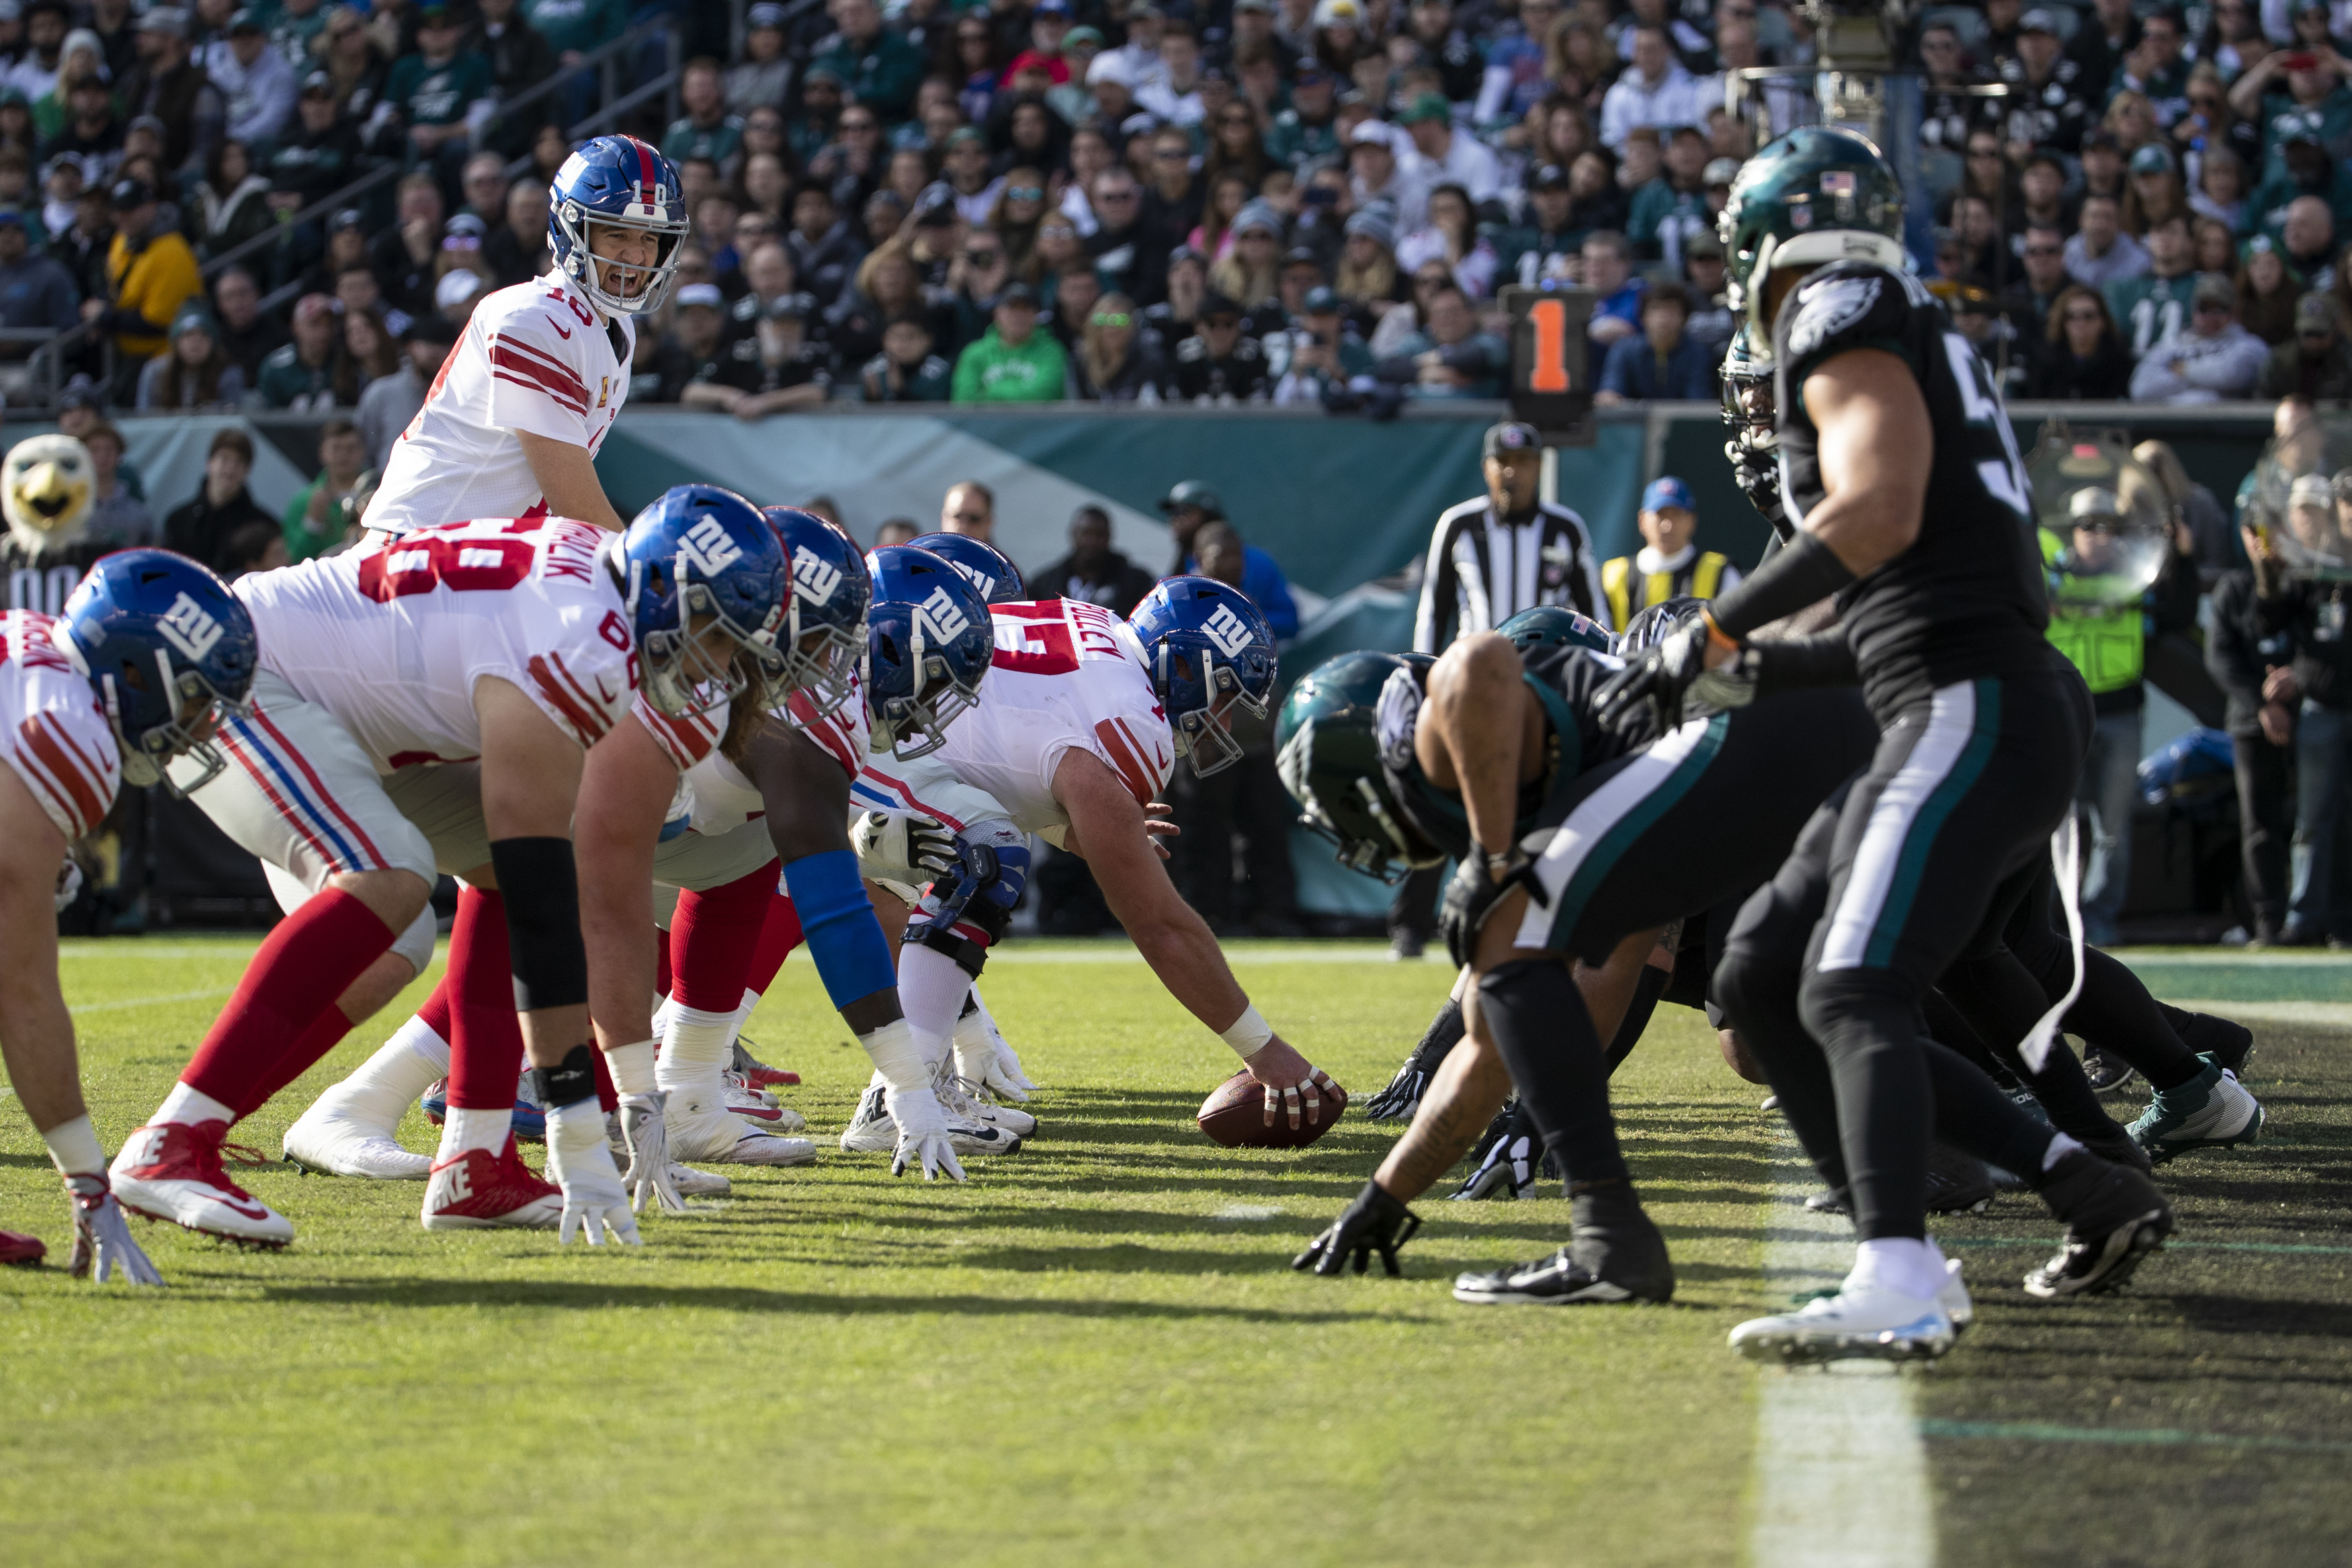 Nfl Tv Schedule What Time Channel Is New York Giants Vs